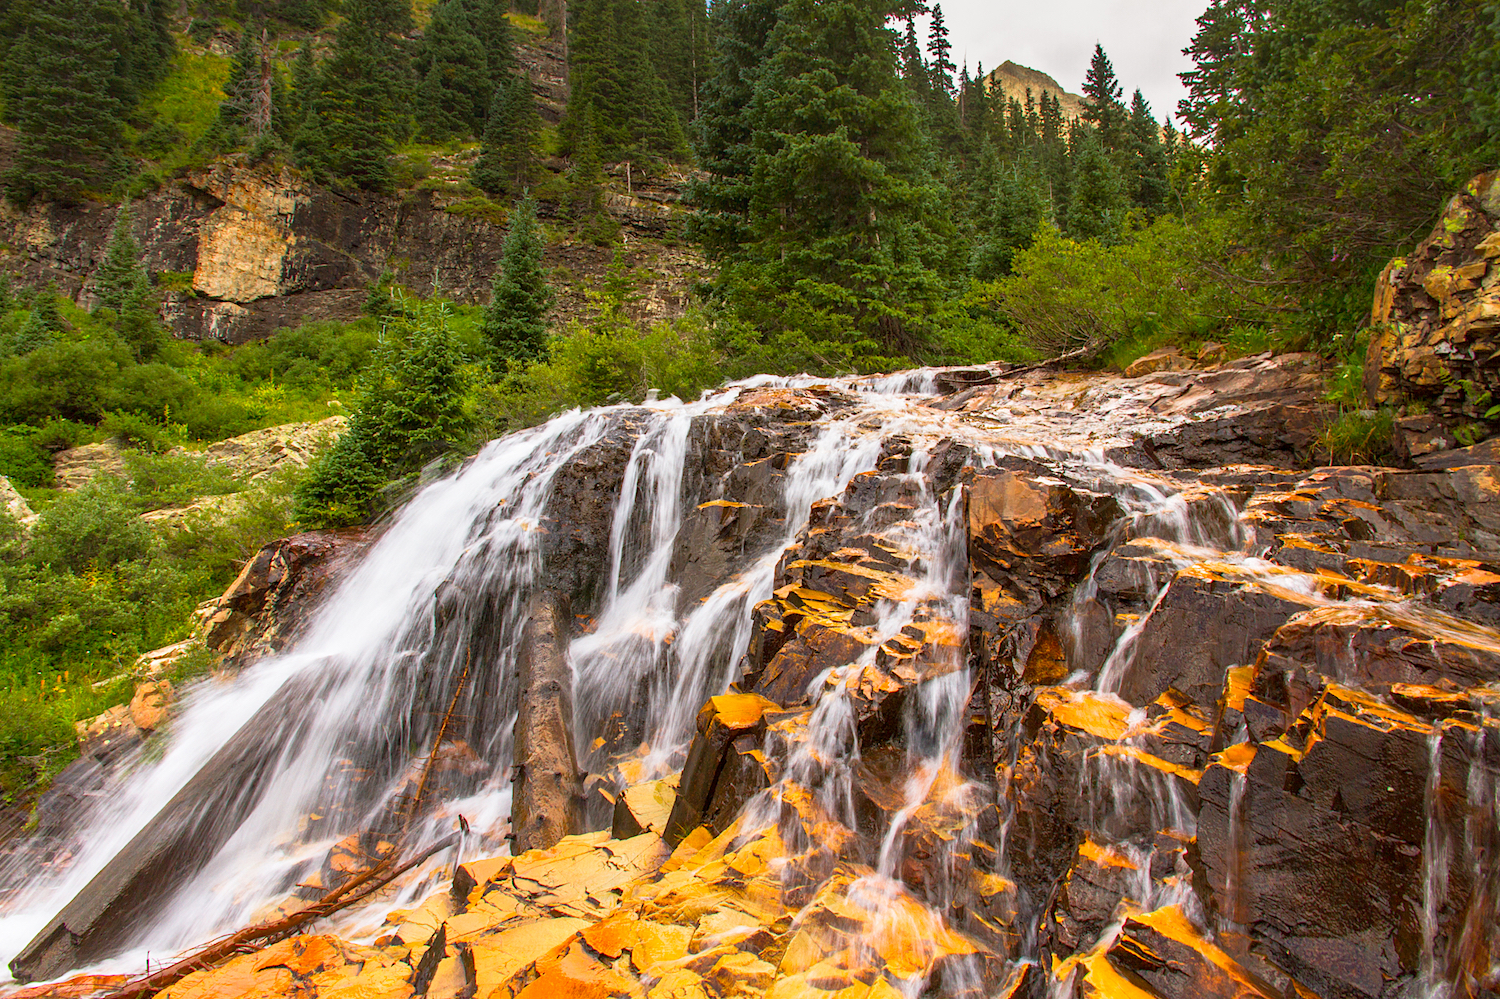 CASCADE DIVIDE WATERFALL, IMAGE # 5422